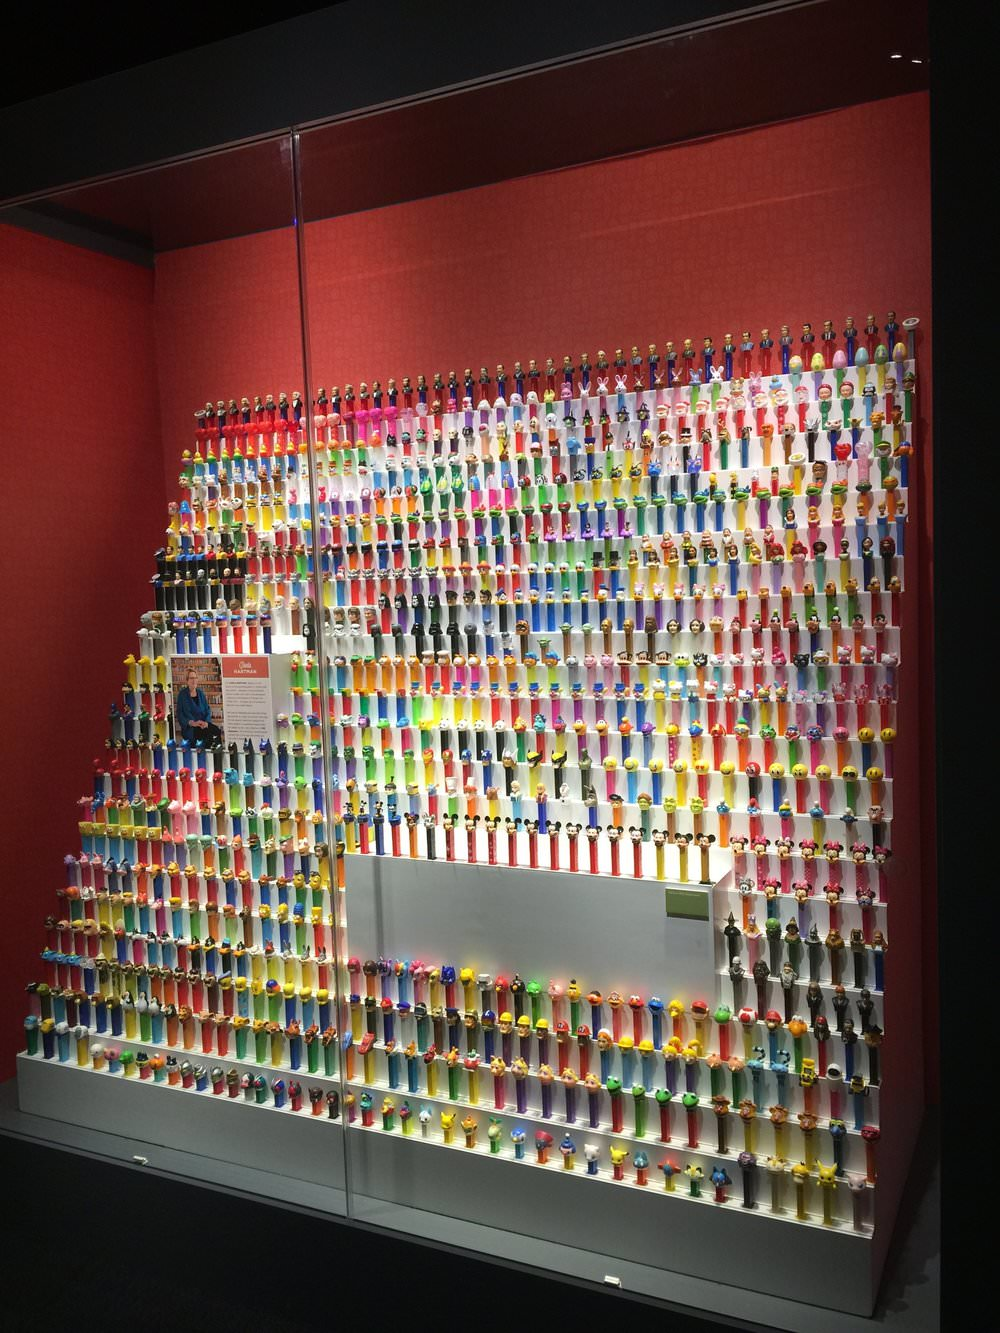 Dozens of dispensers. PEZ turns 90 next year, and it's hard to imagine that its dispensers didn't always sport their famous and ever-changing heads. Carla Eames Hartman has collected many of the best. (And, yes, she's the daughter of design legends Charles and Ray Eames.) Click to enlarge and see how many PEZsters you can ID. This is another display from Eye of the Collector. (Photo: Will Larson)